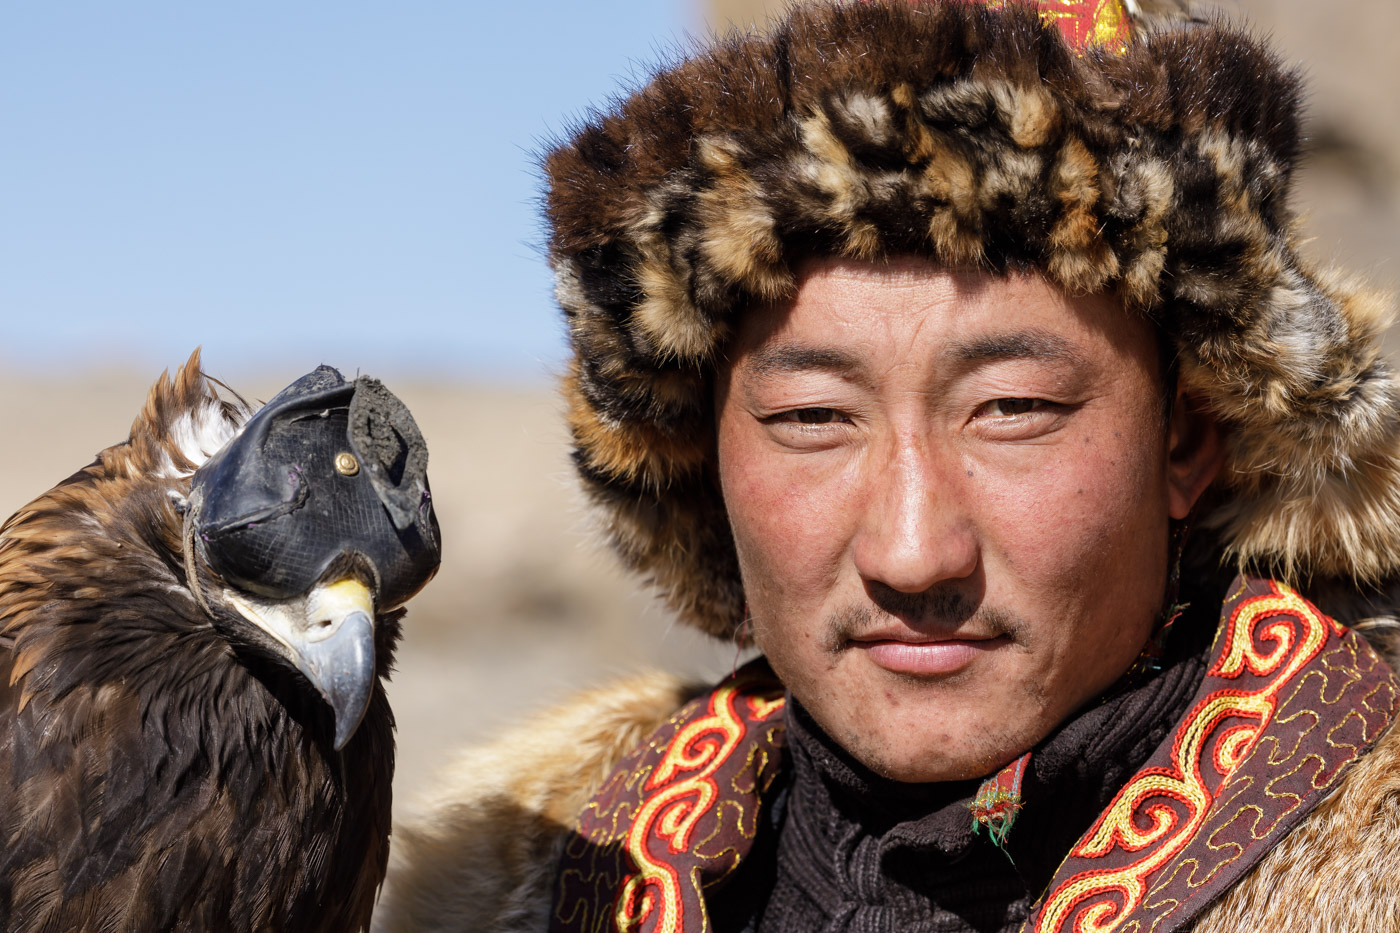 A Kazak Mongolian eagle hunter and his eagle in the Altai